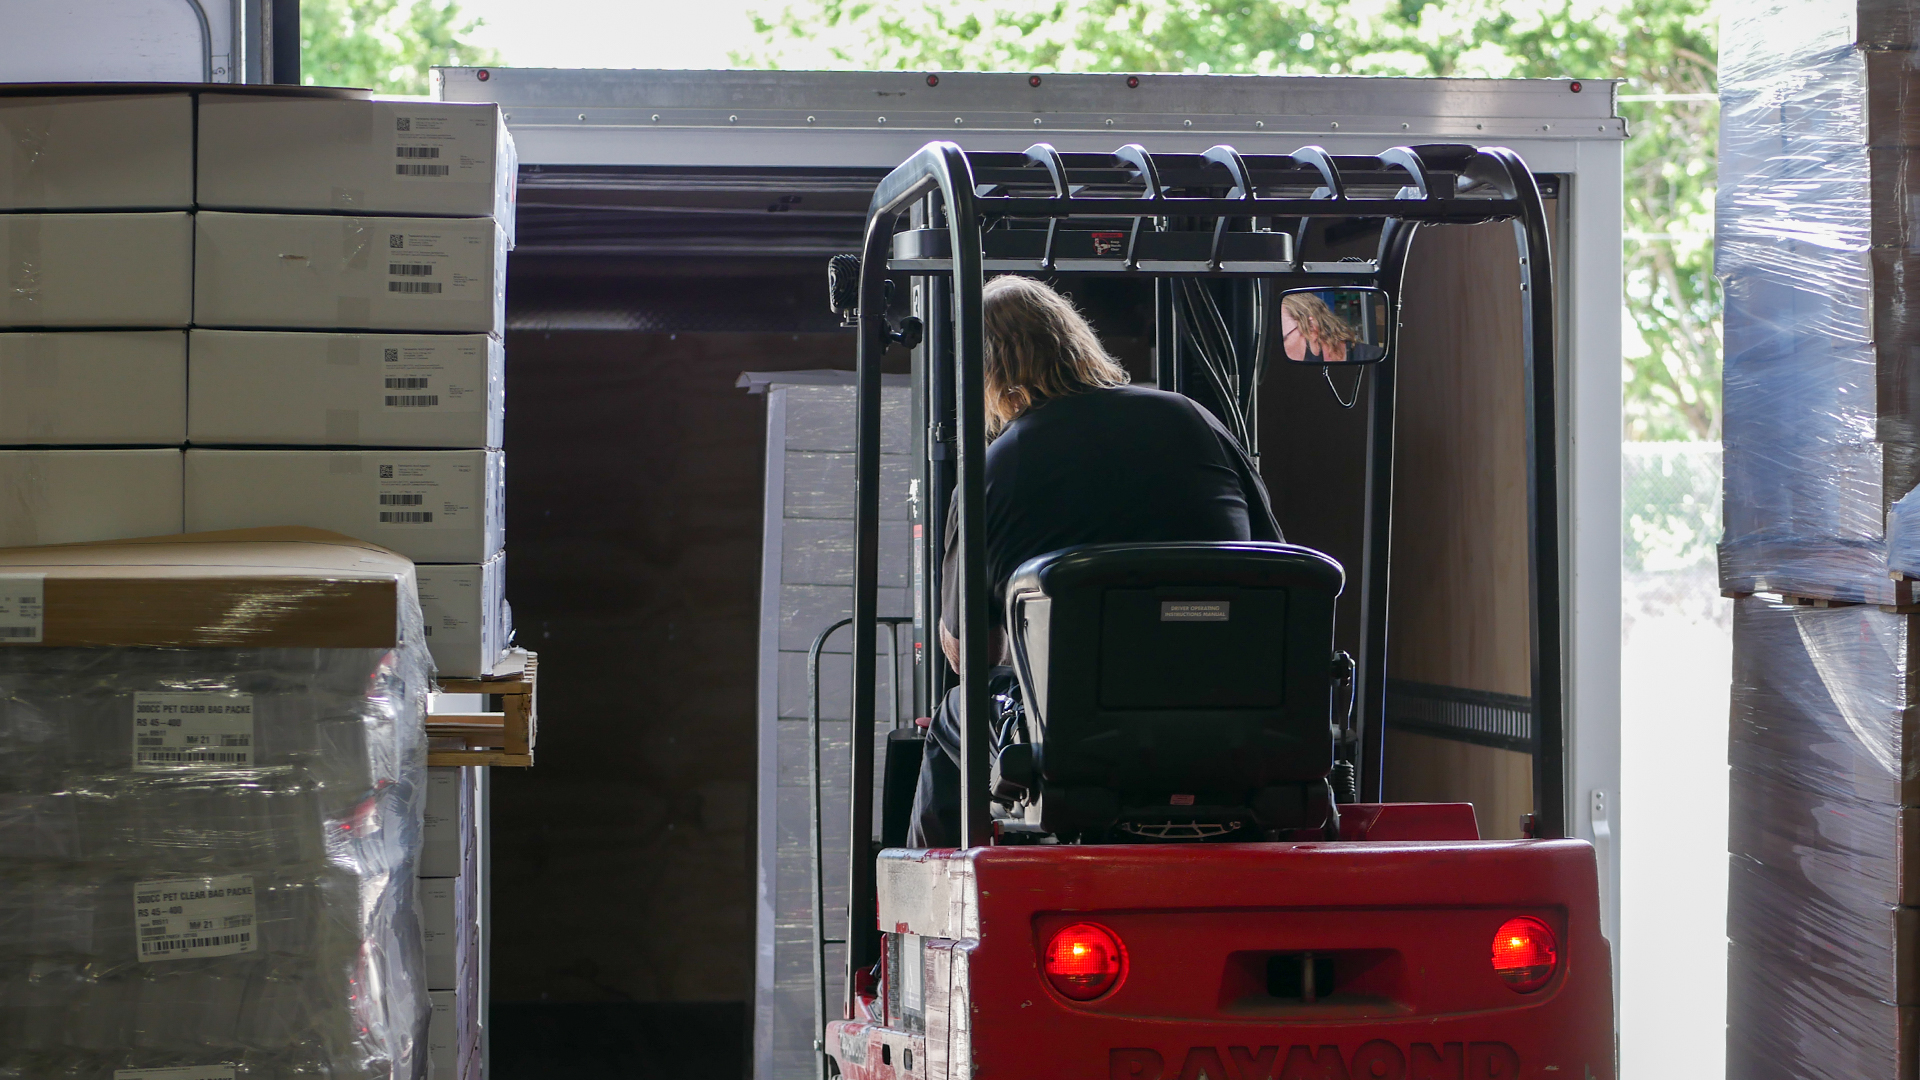 Warehouse Supervisor fills truck with pallets using forklift.